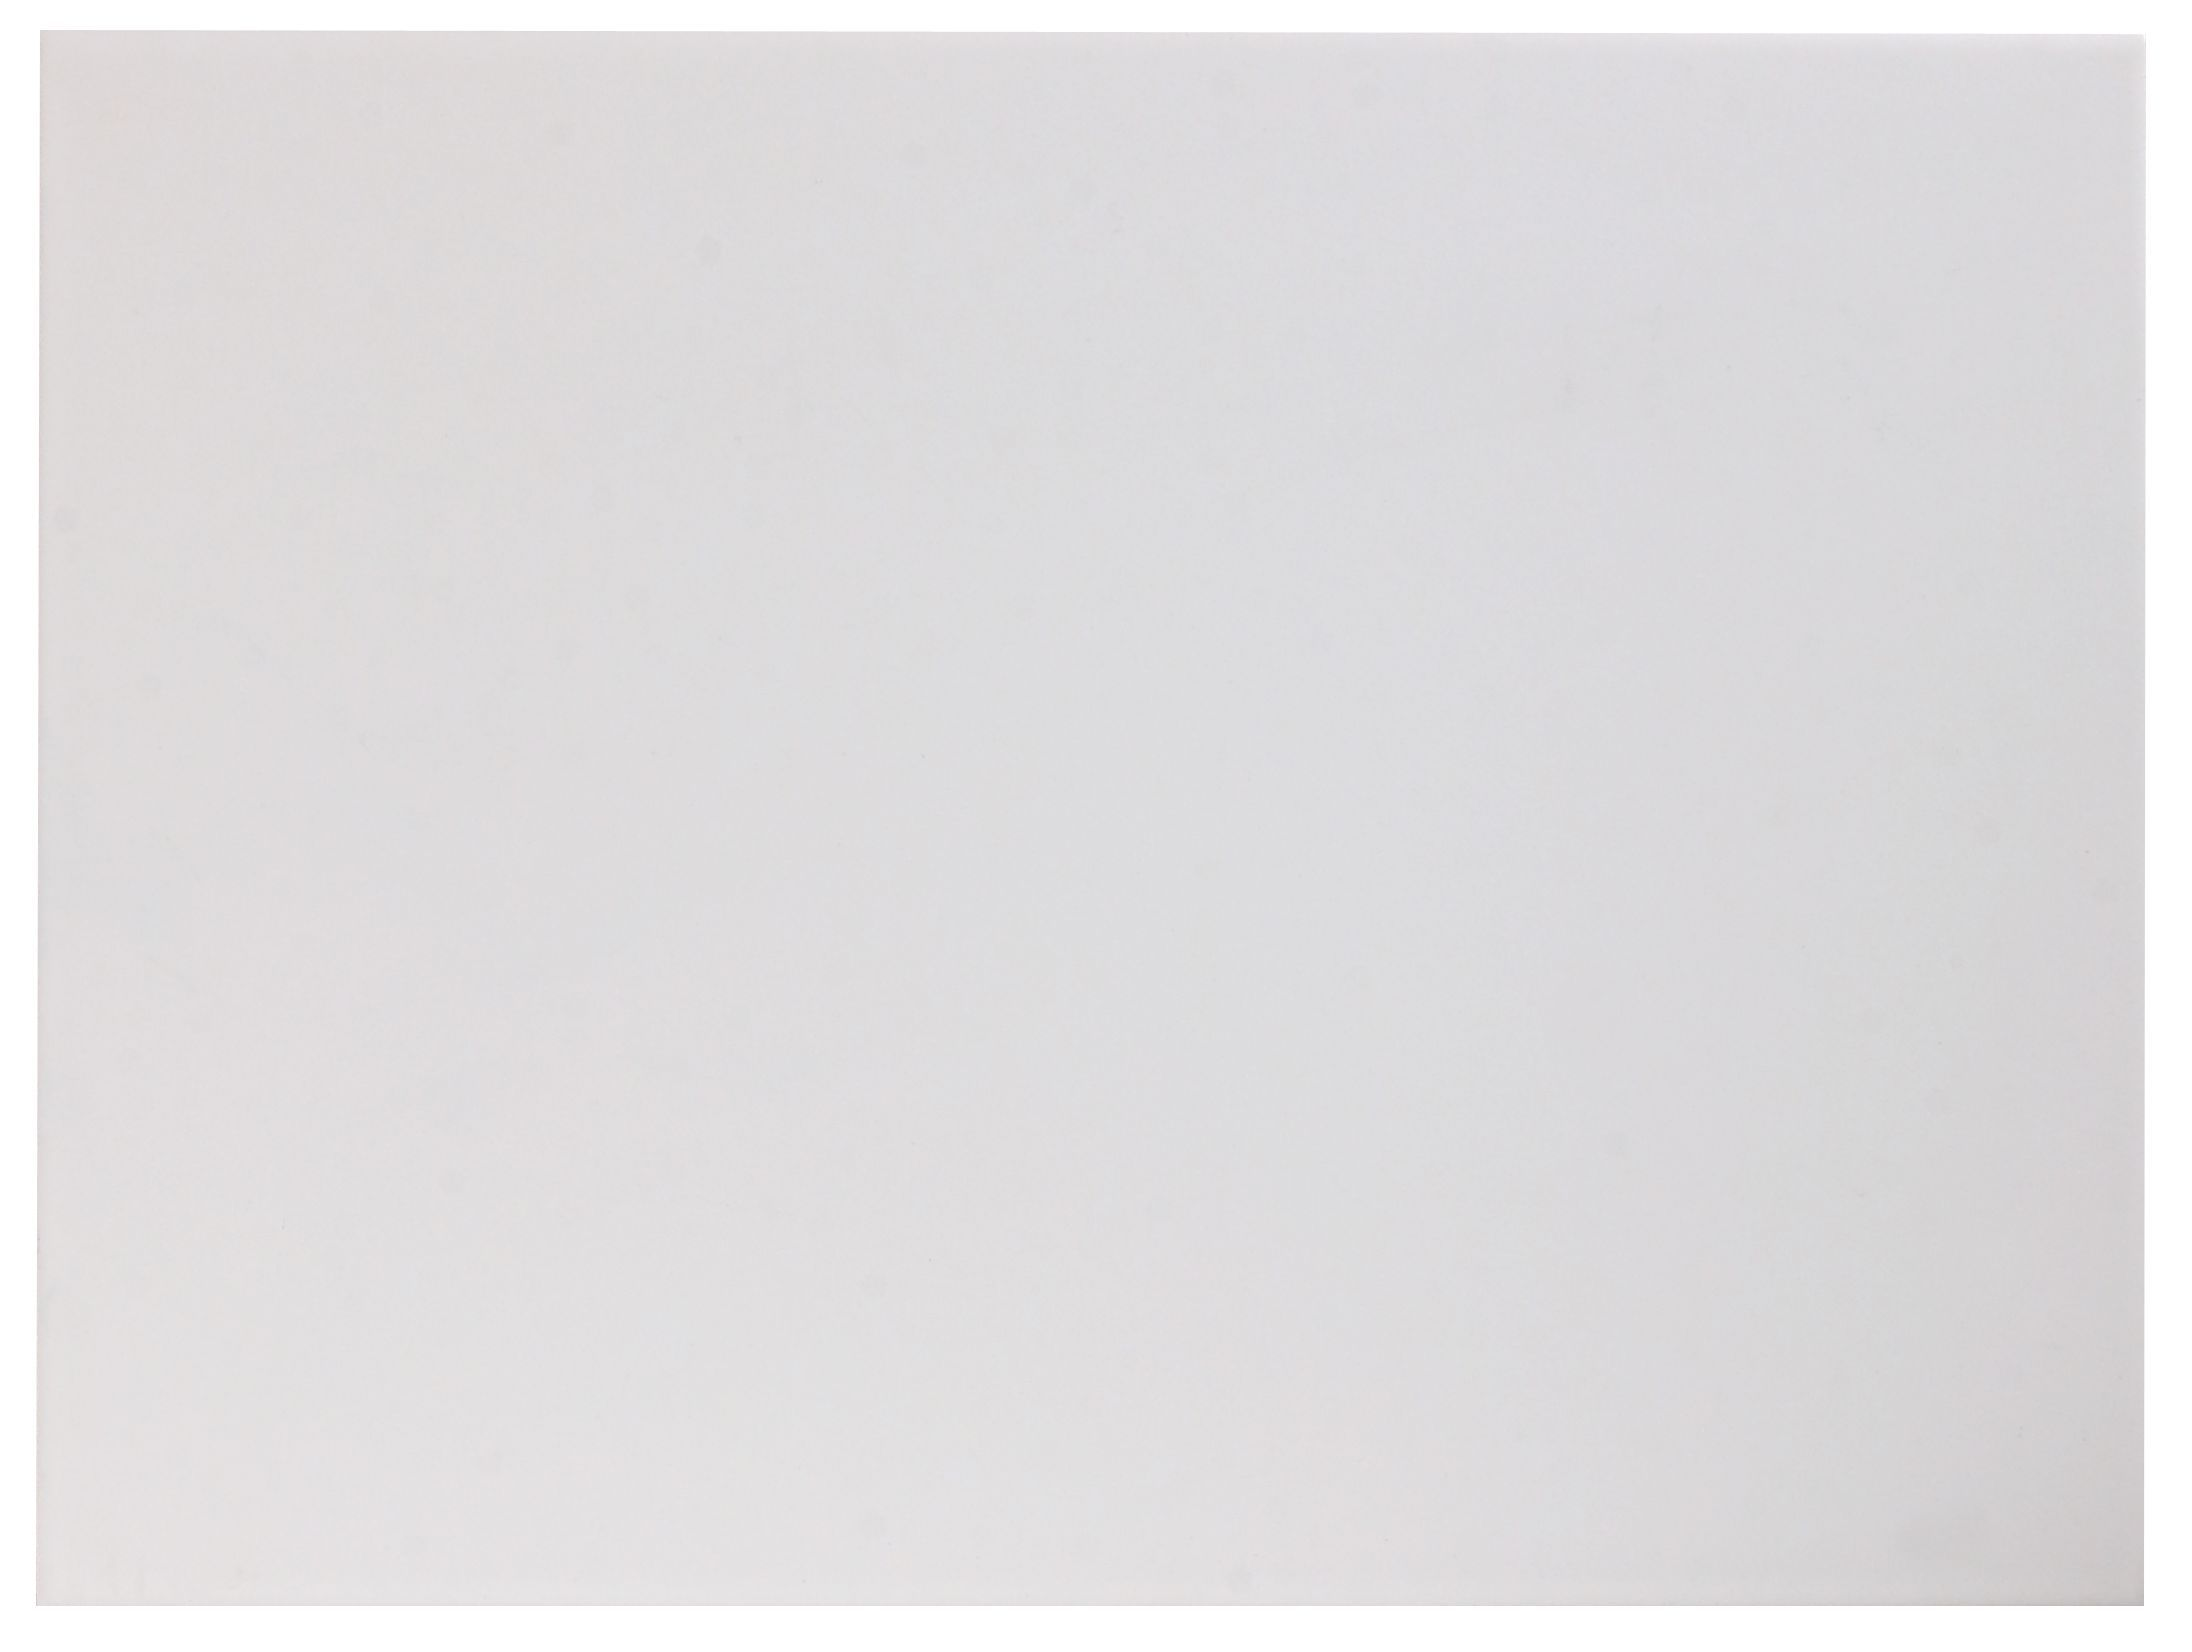 Best of b q kitchen wall tiles taste designer white ceramic wall tile pack of 8 l 300mm w 400mm dailygadgetfo Choice Image